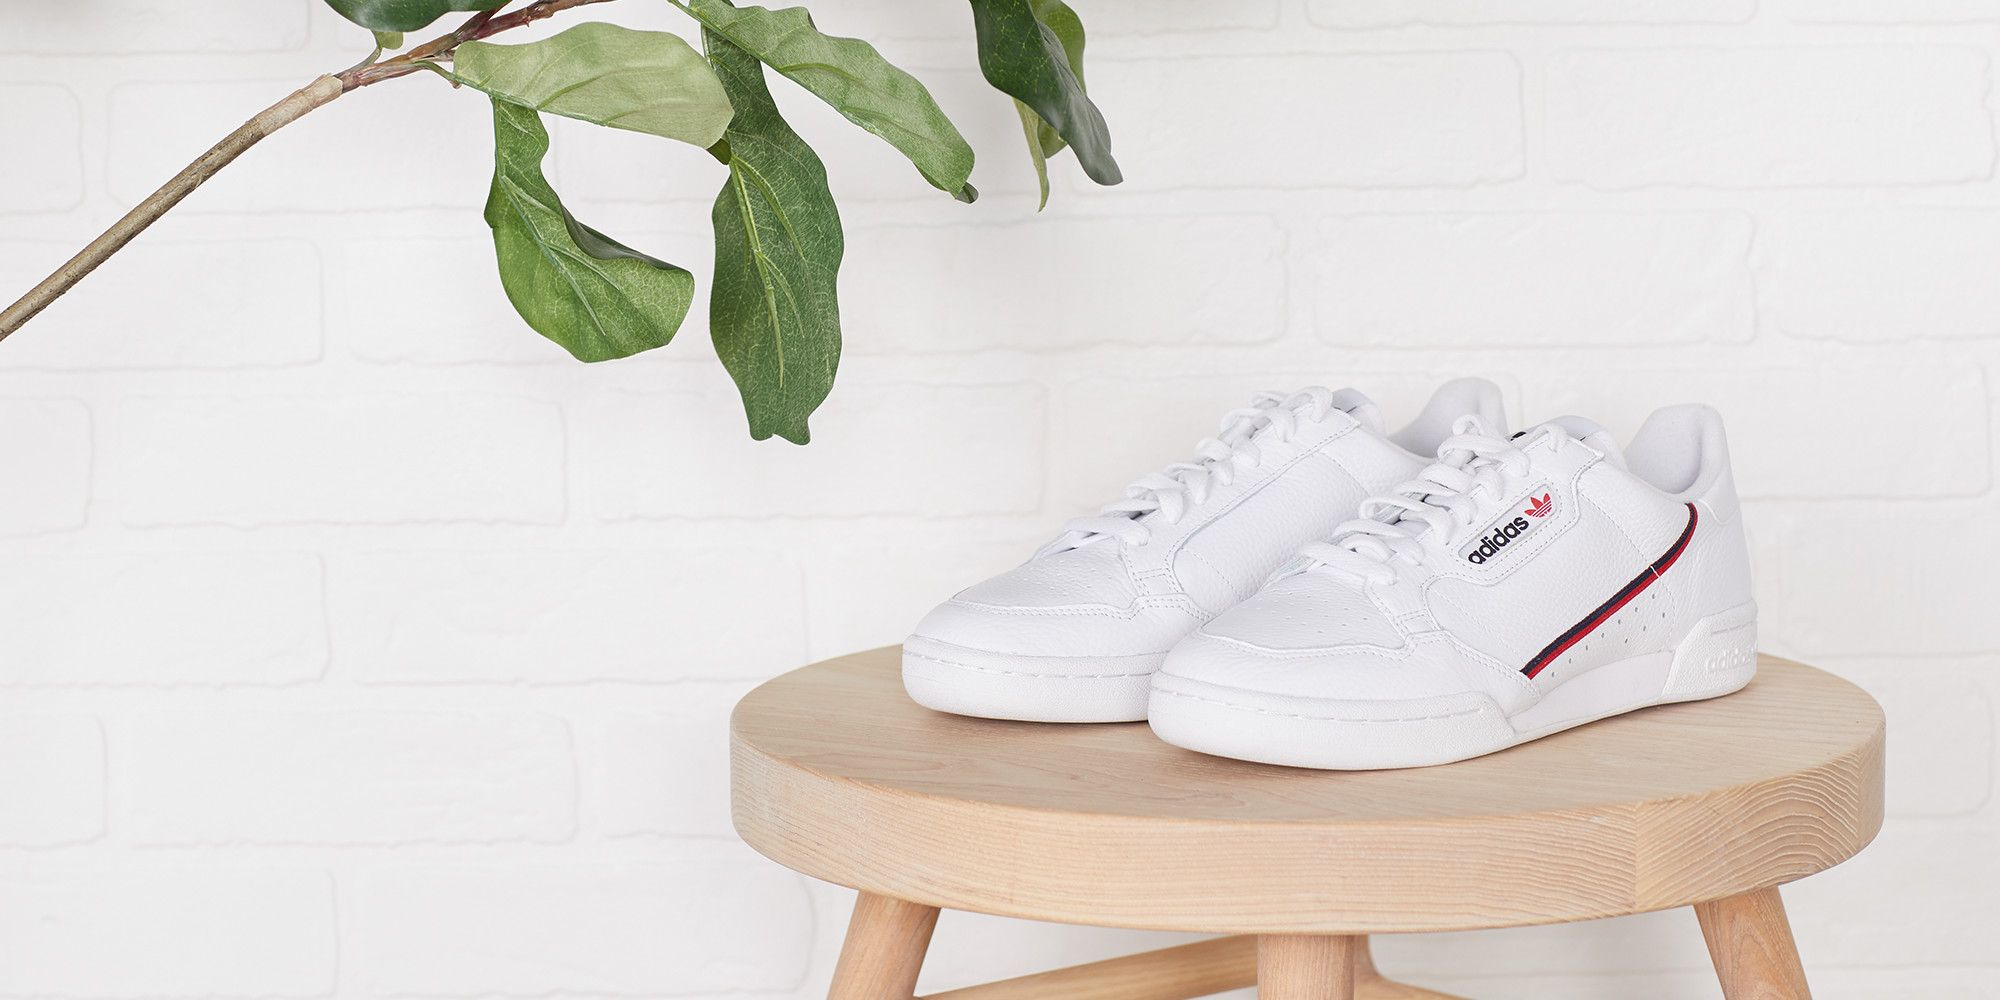 936bbe78e The Fresh White Sneaker That Everyone Can (and Should) Wear This Spring